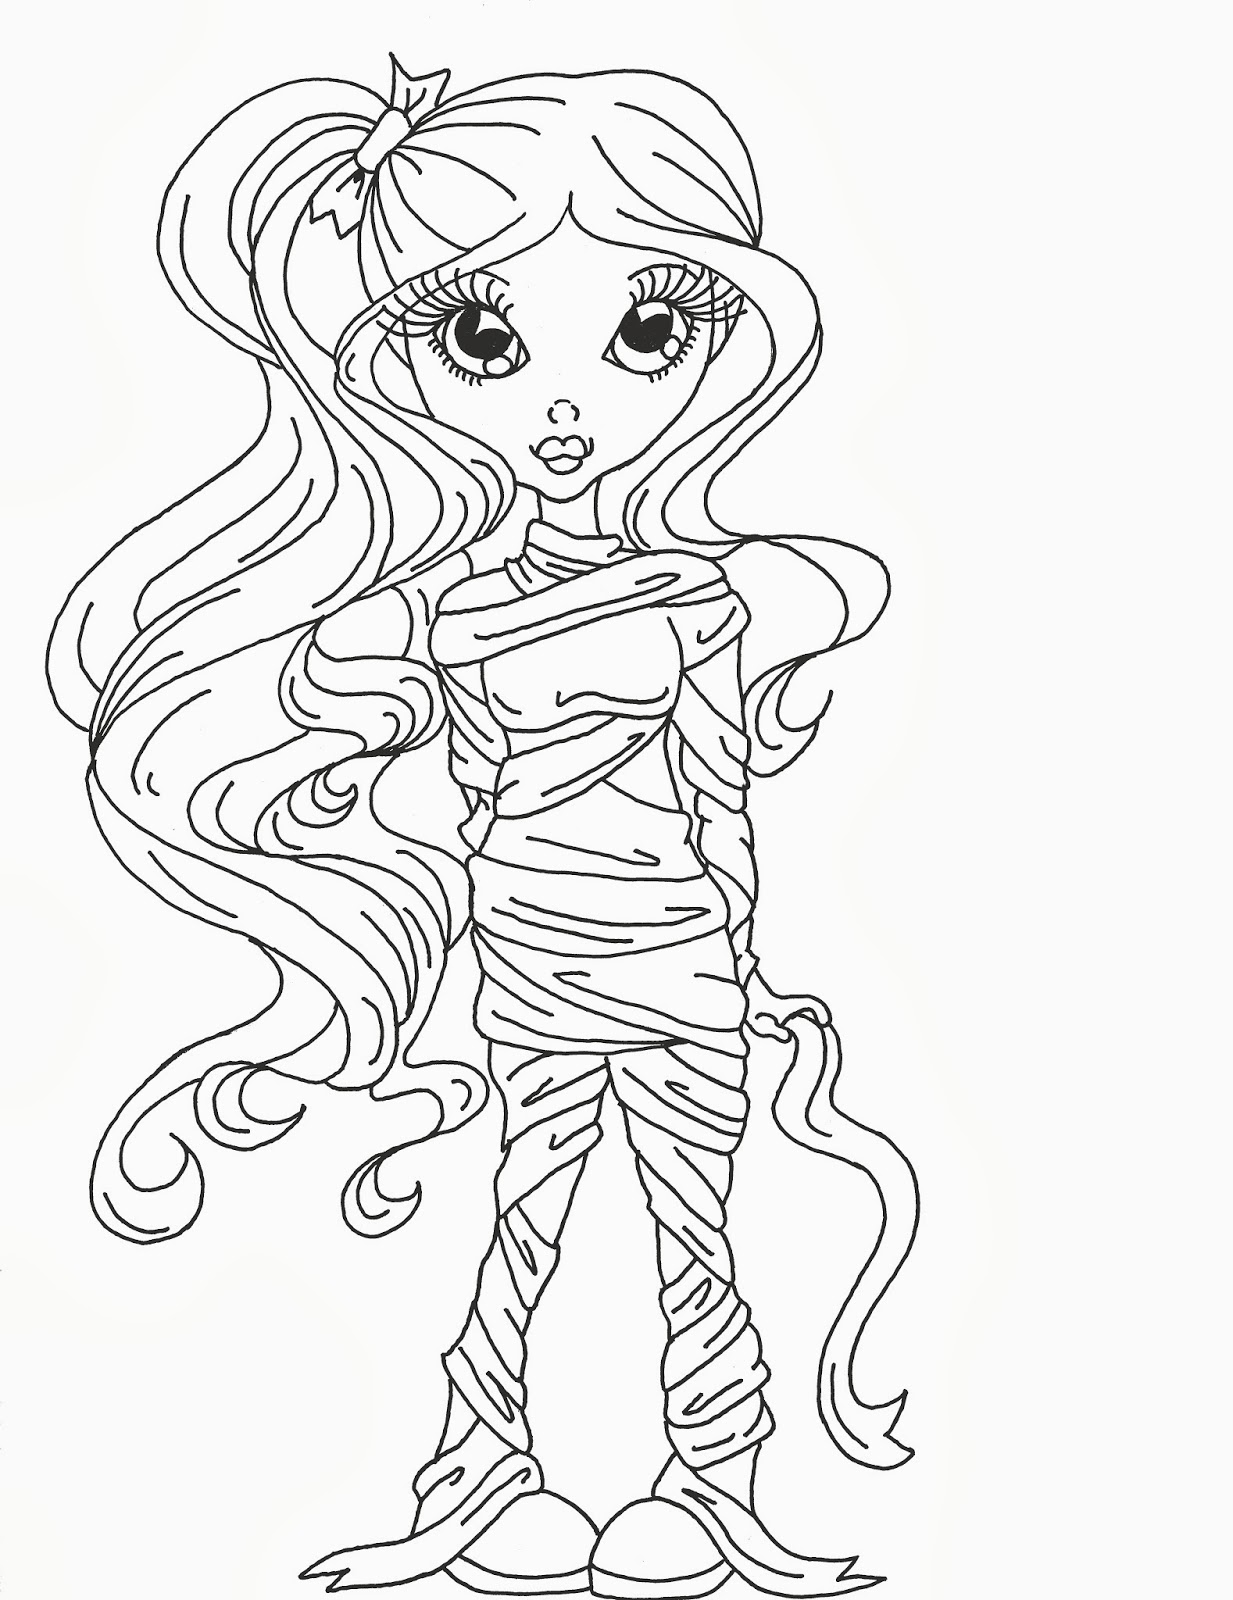 mummy coloring page - cuddlebug cuties darling mummy digital stamp and some